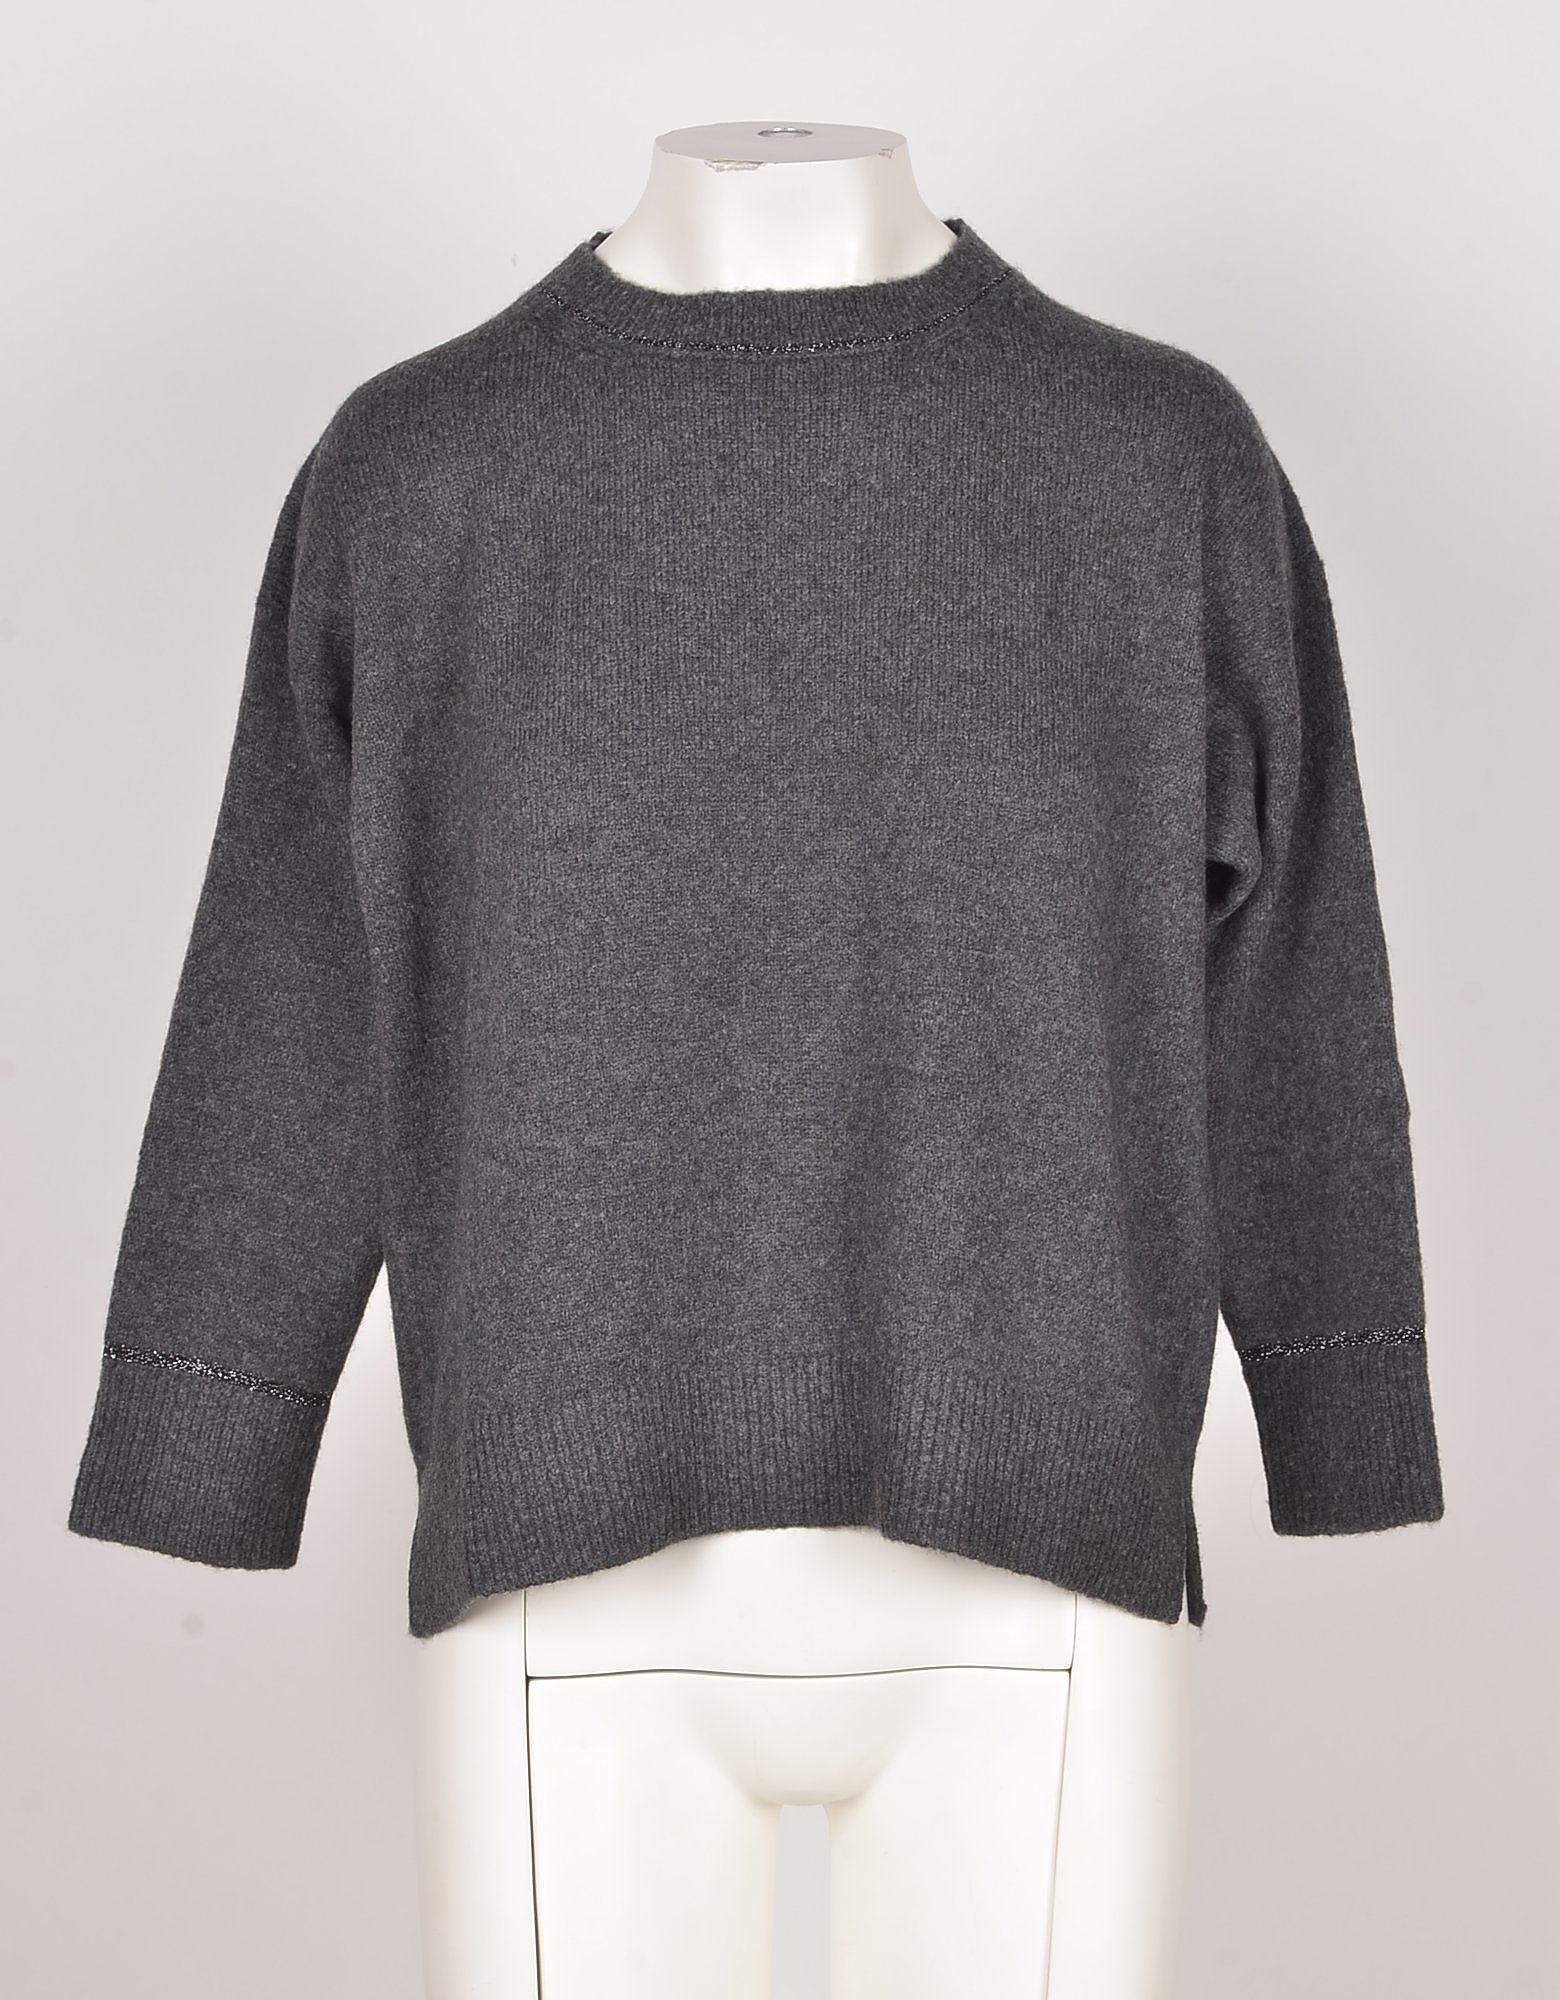 Bruno Manetti Designer Knitwear, Anthracite Wool & Cashmere Blend Women's Sweater